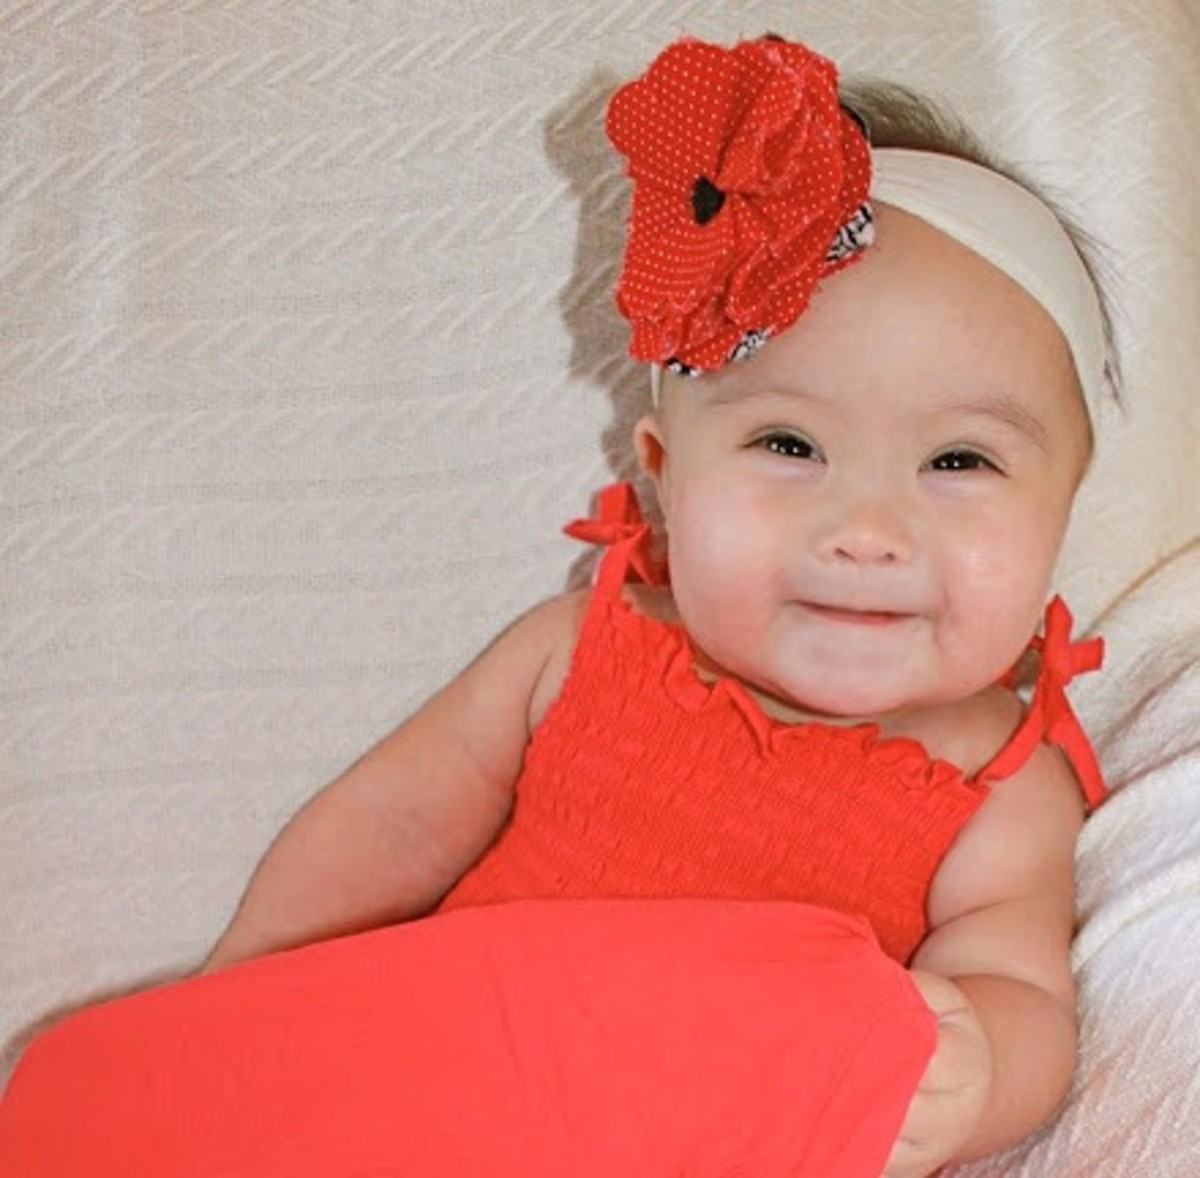 Letting Go of Perfect - How My Surprise Down Syndrome Baby